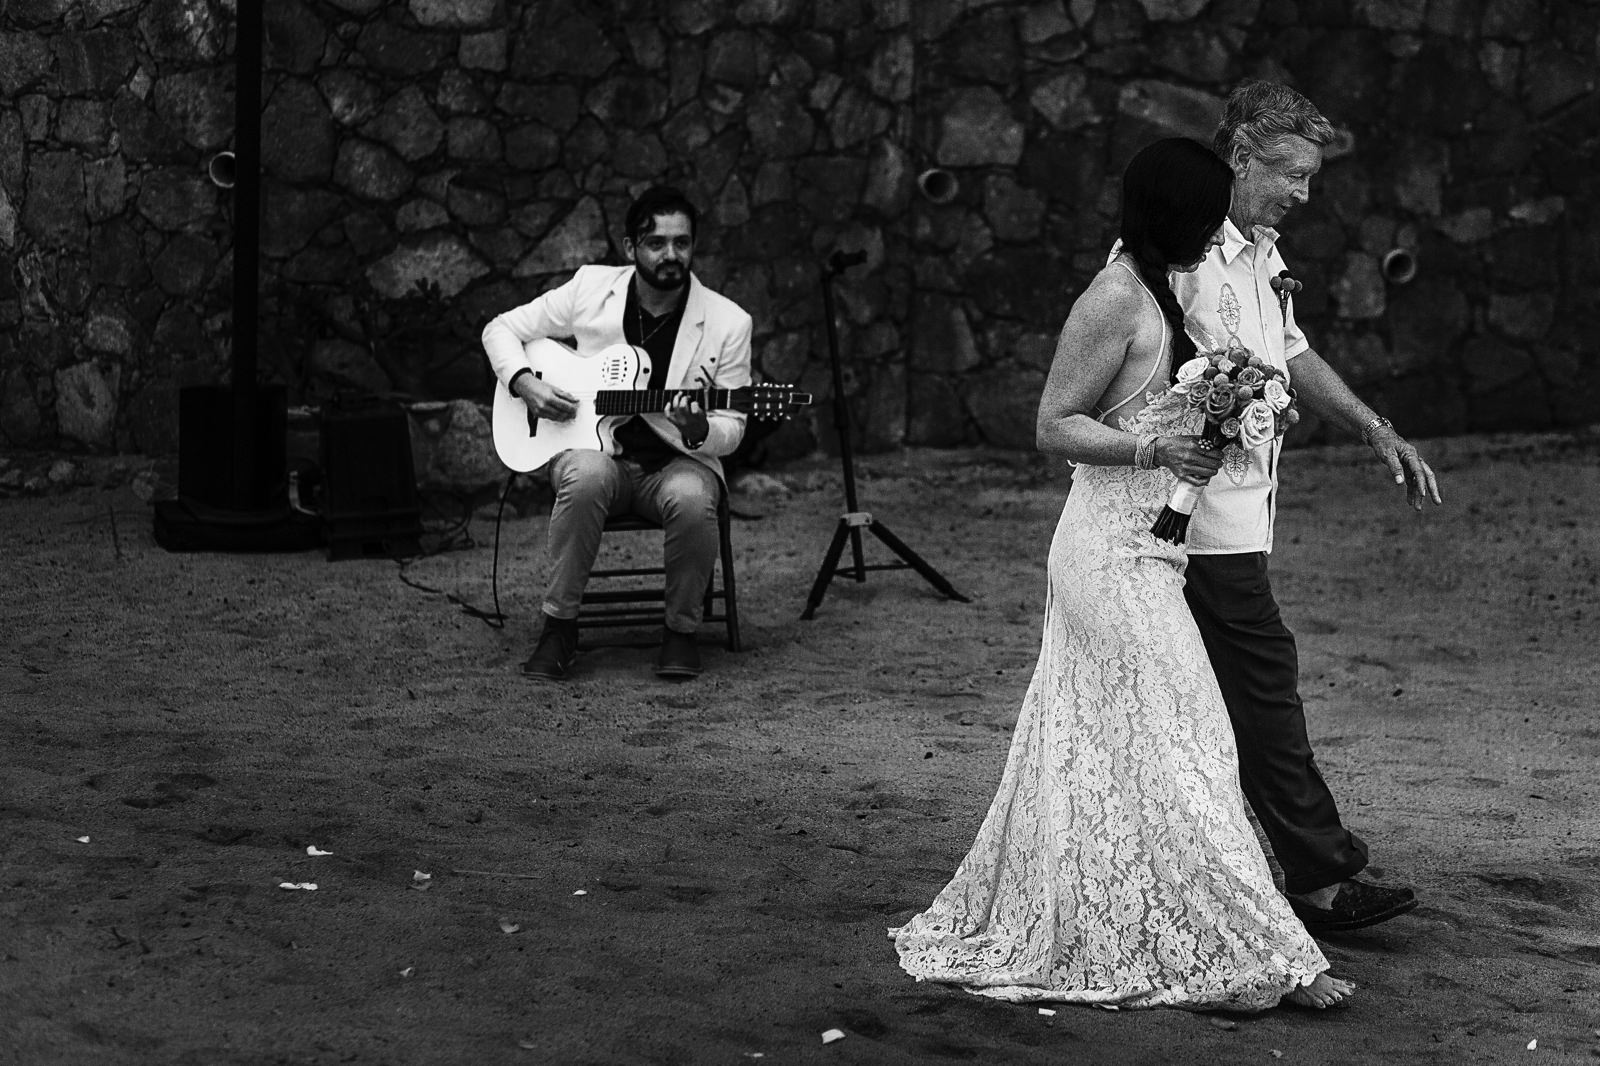 Father of the bride walking his daughter while a guitar player plays in the background